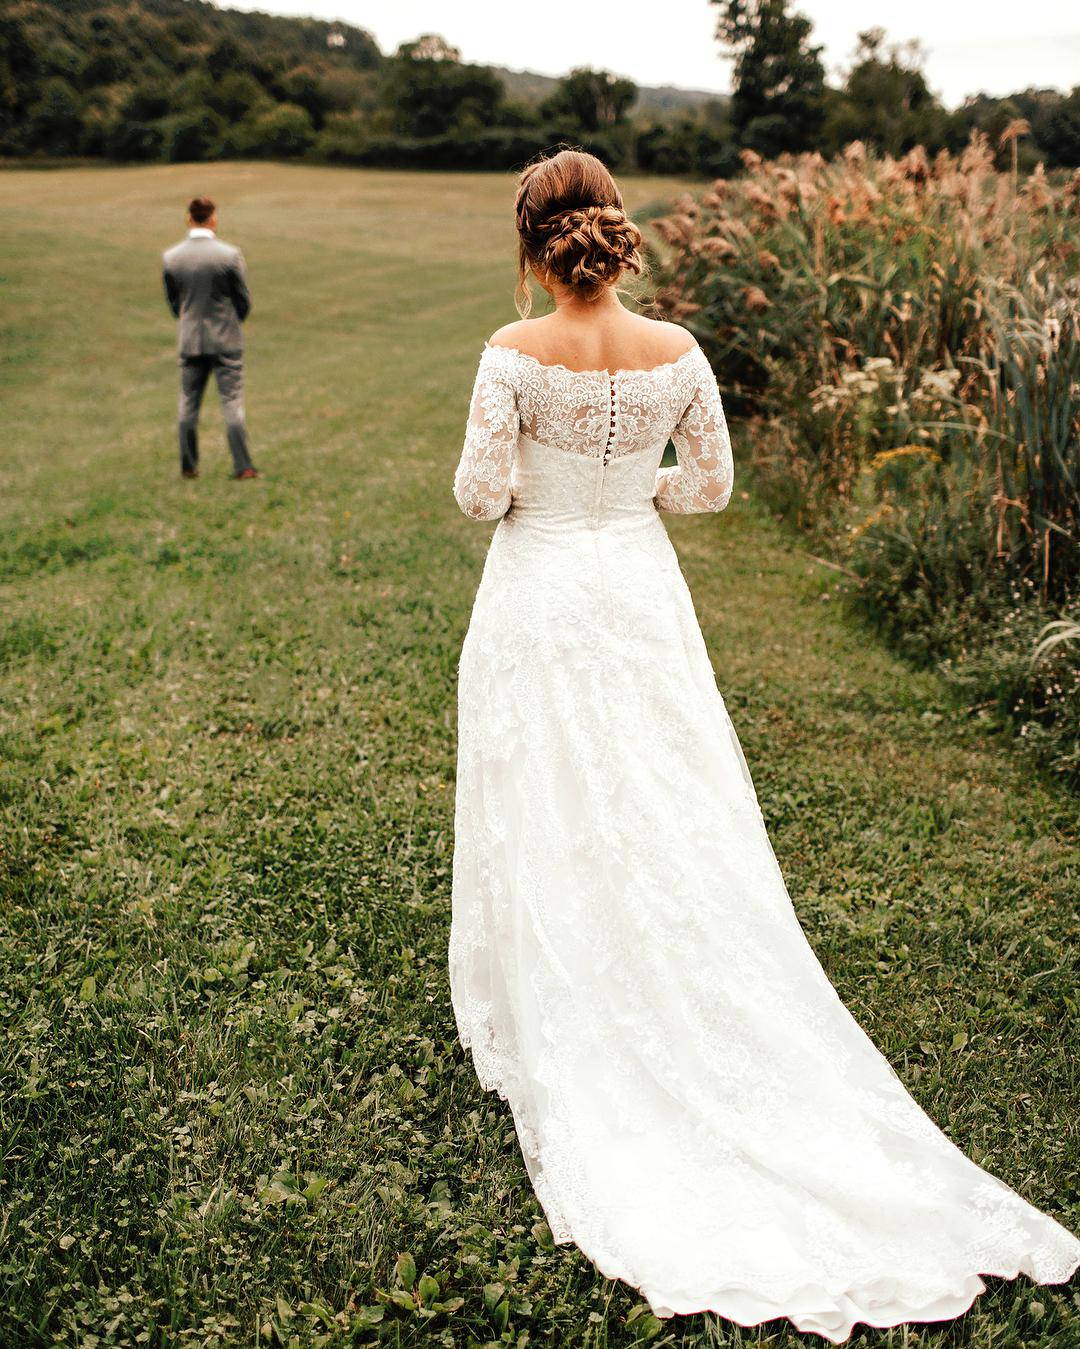 Should You Have A First Look Before The Wedding?